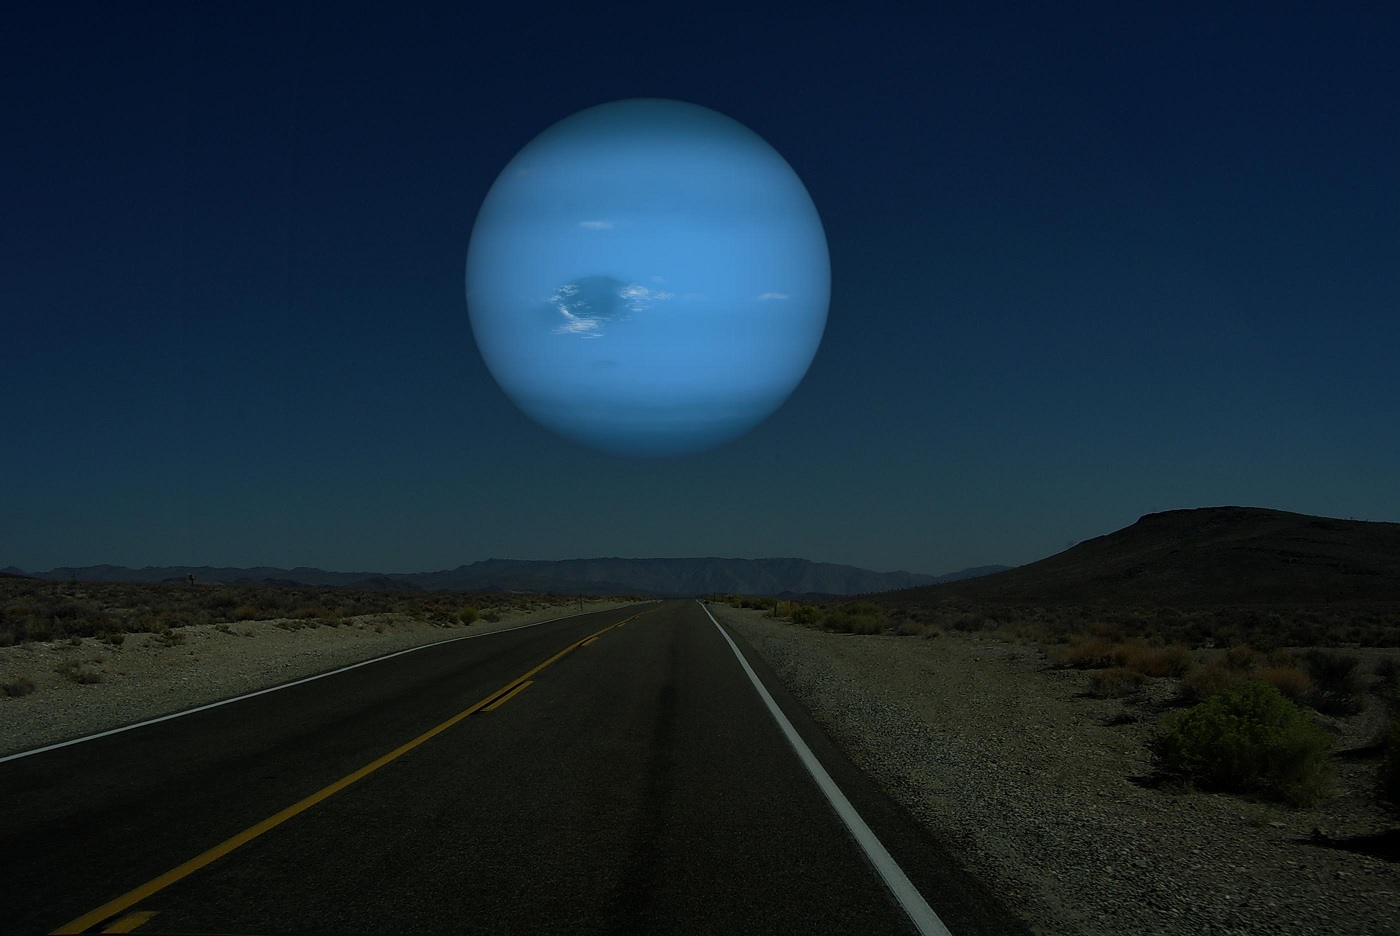 Neptune as Earth's Moon